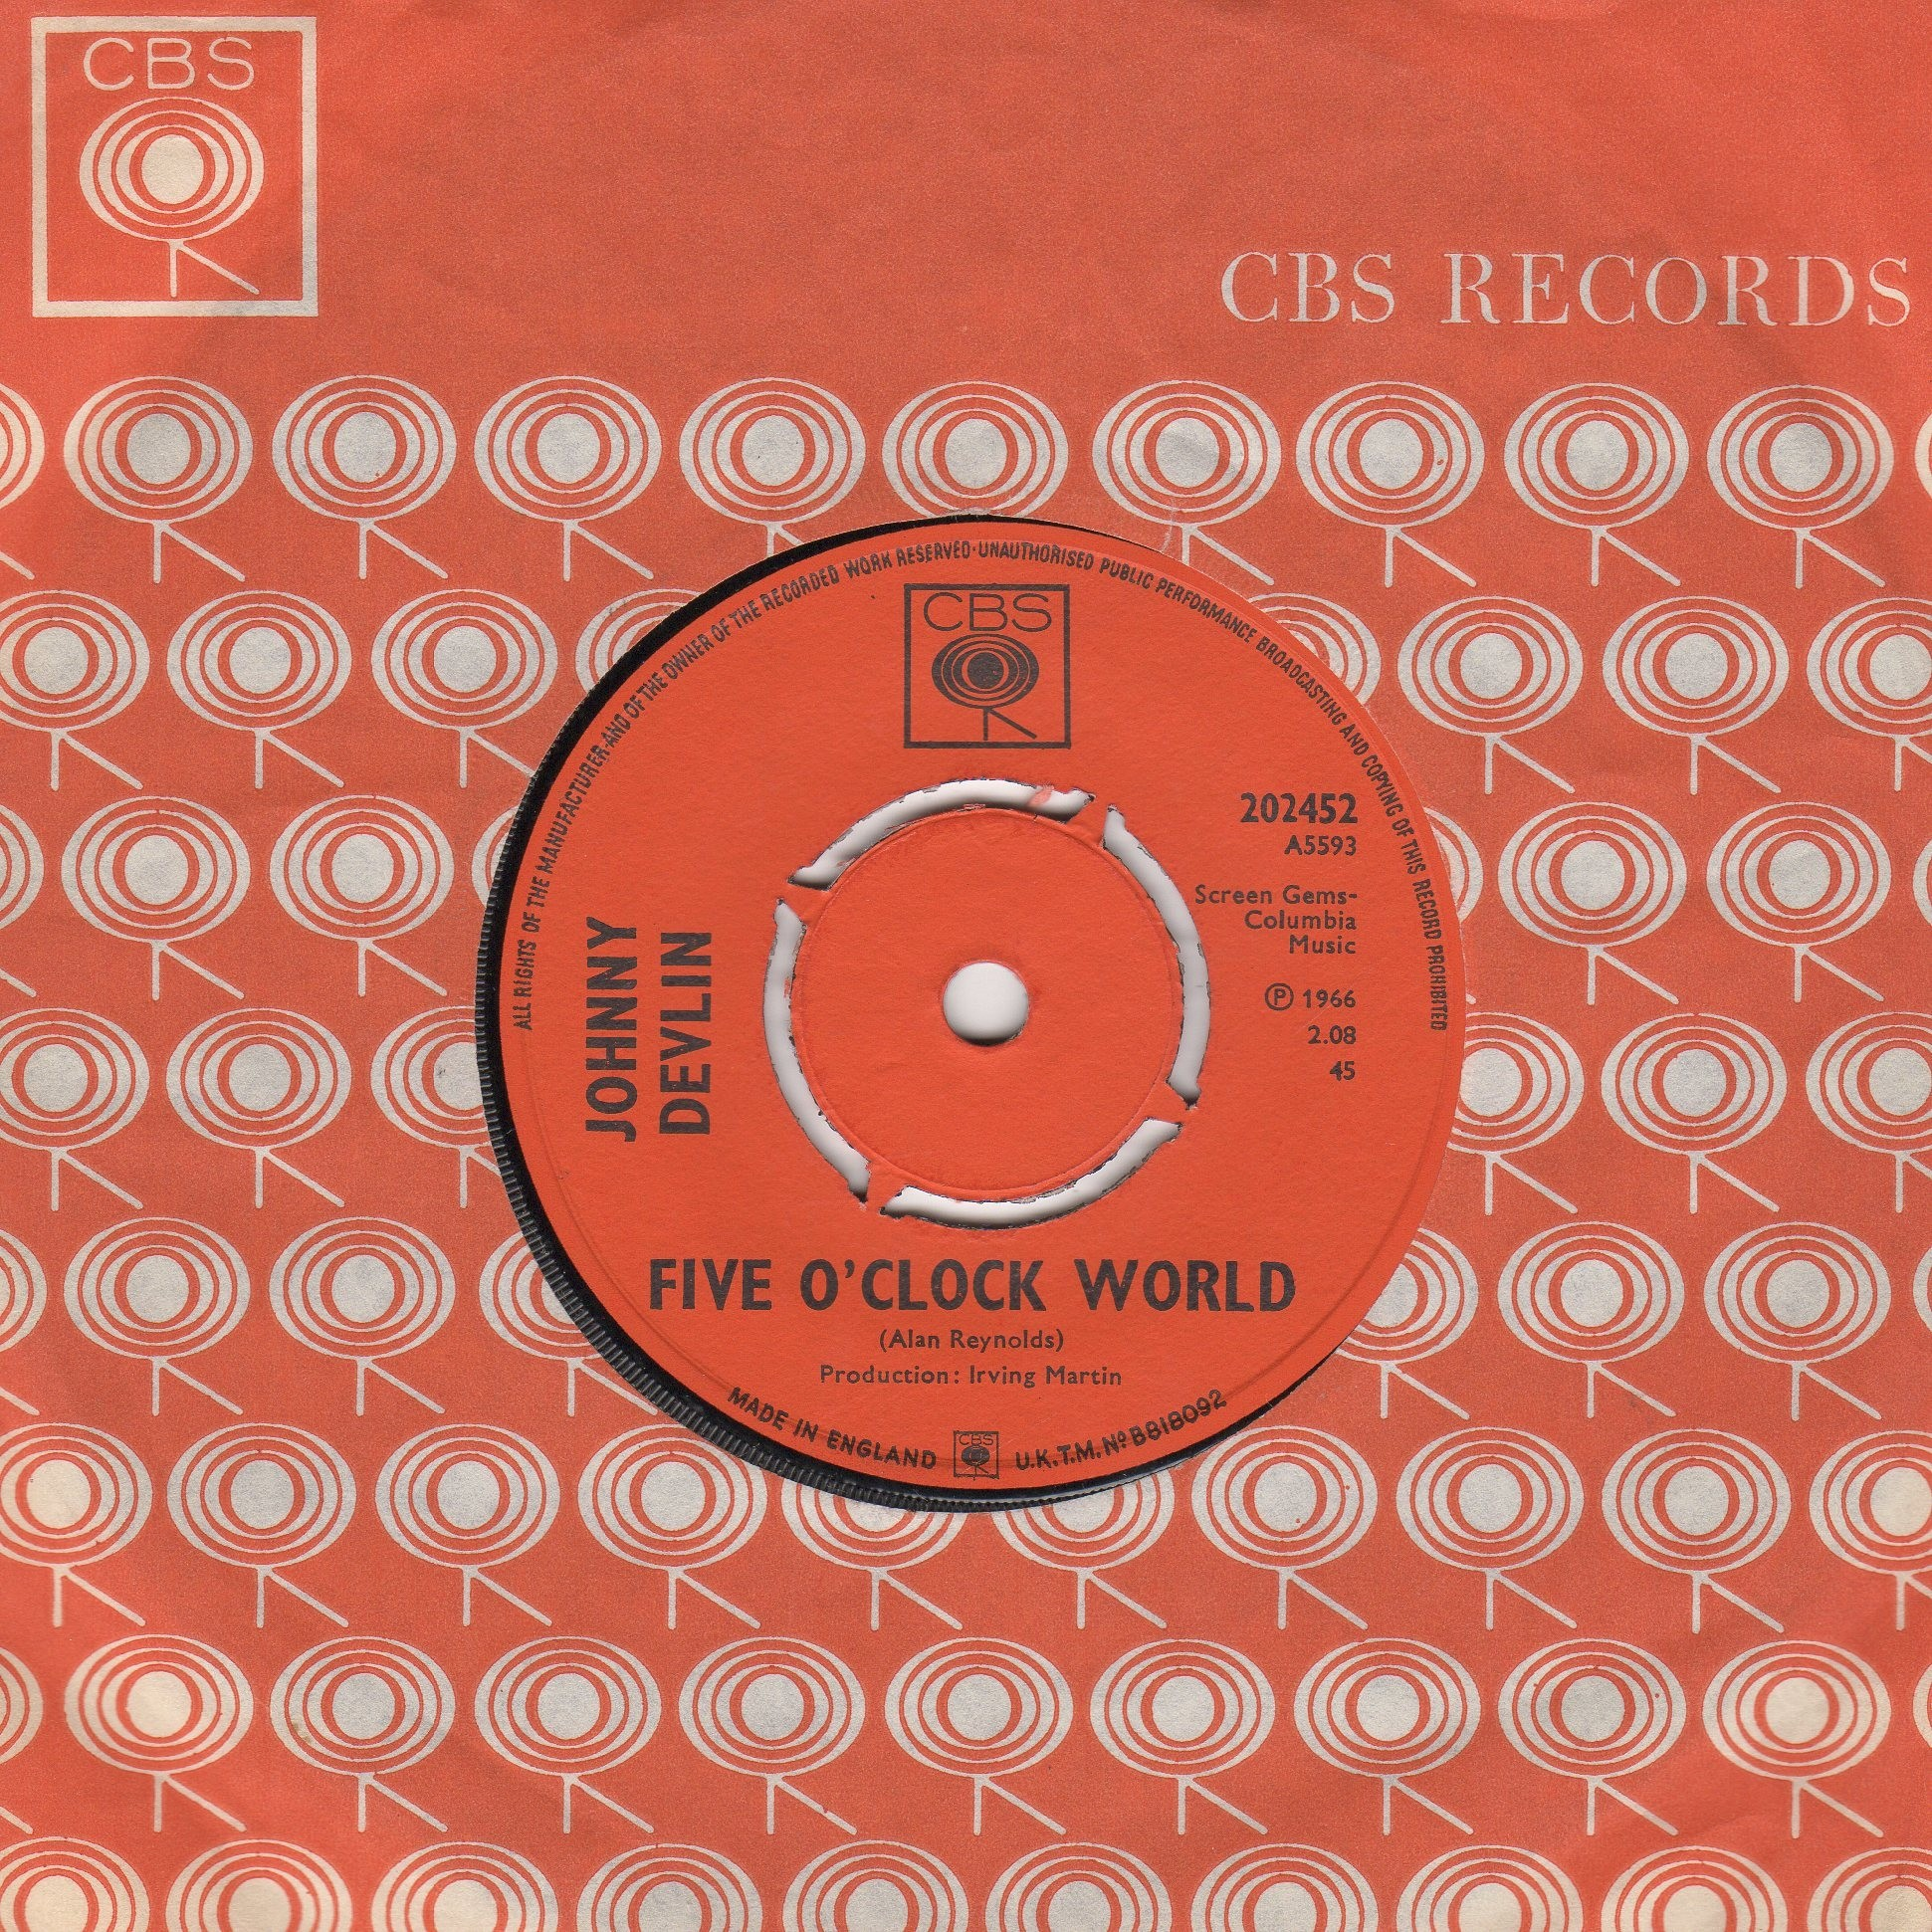 Five O clock World